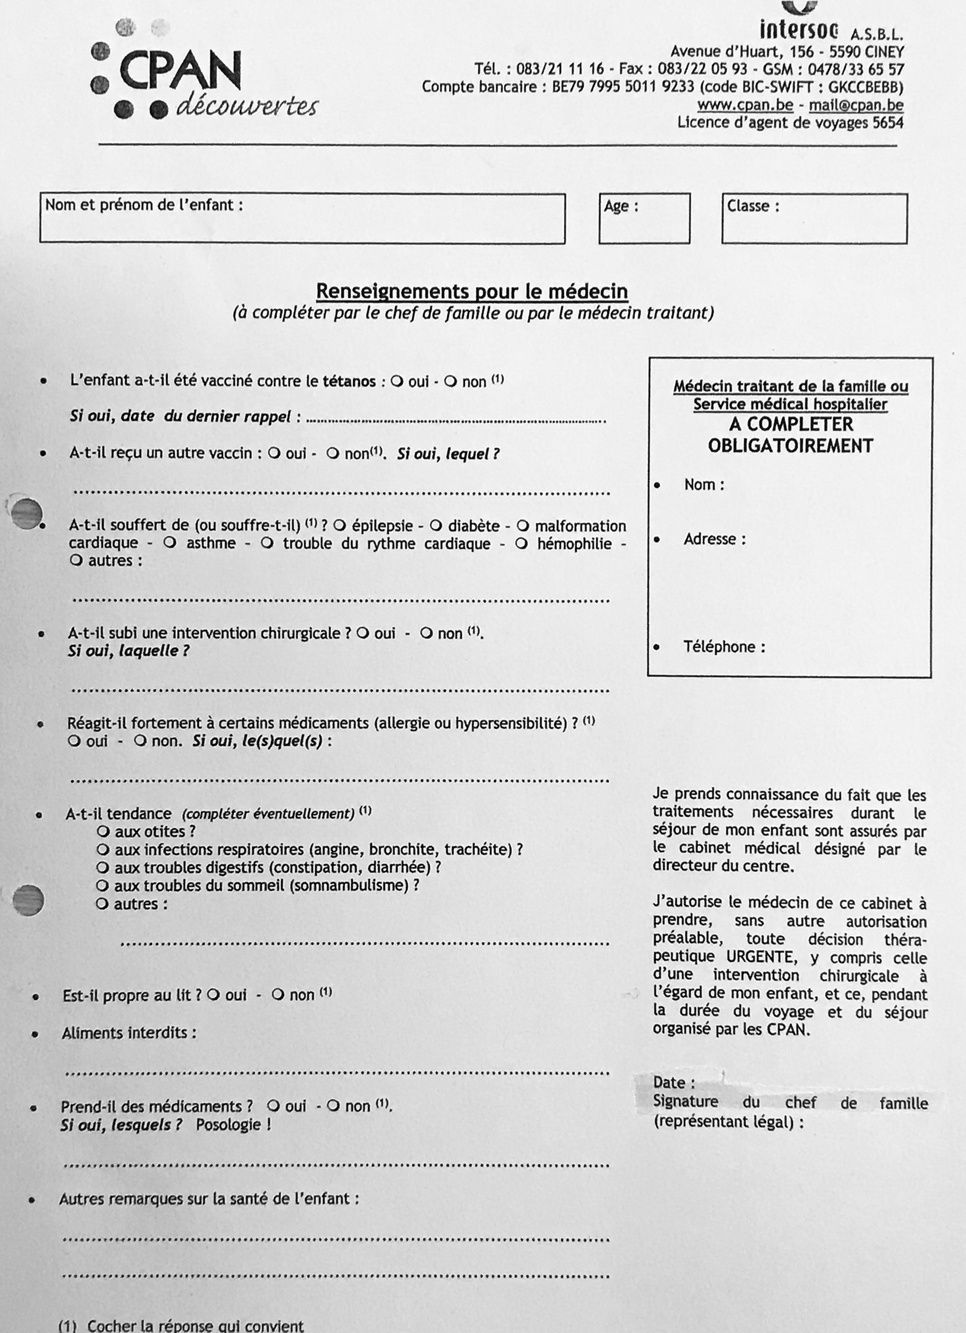 Les documents - Pelvoux 2018